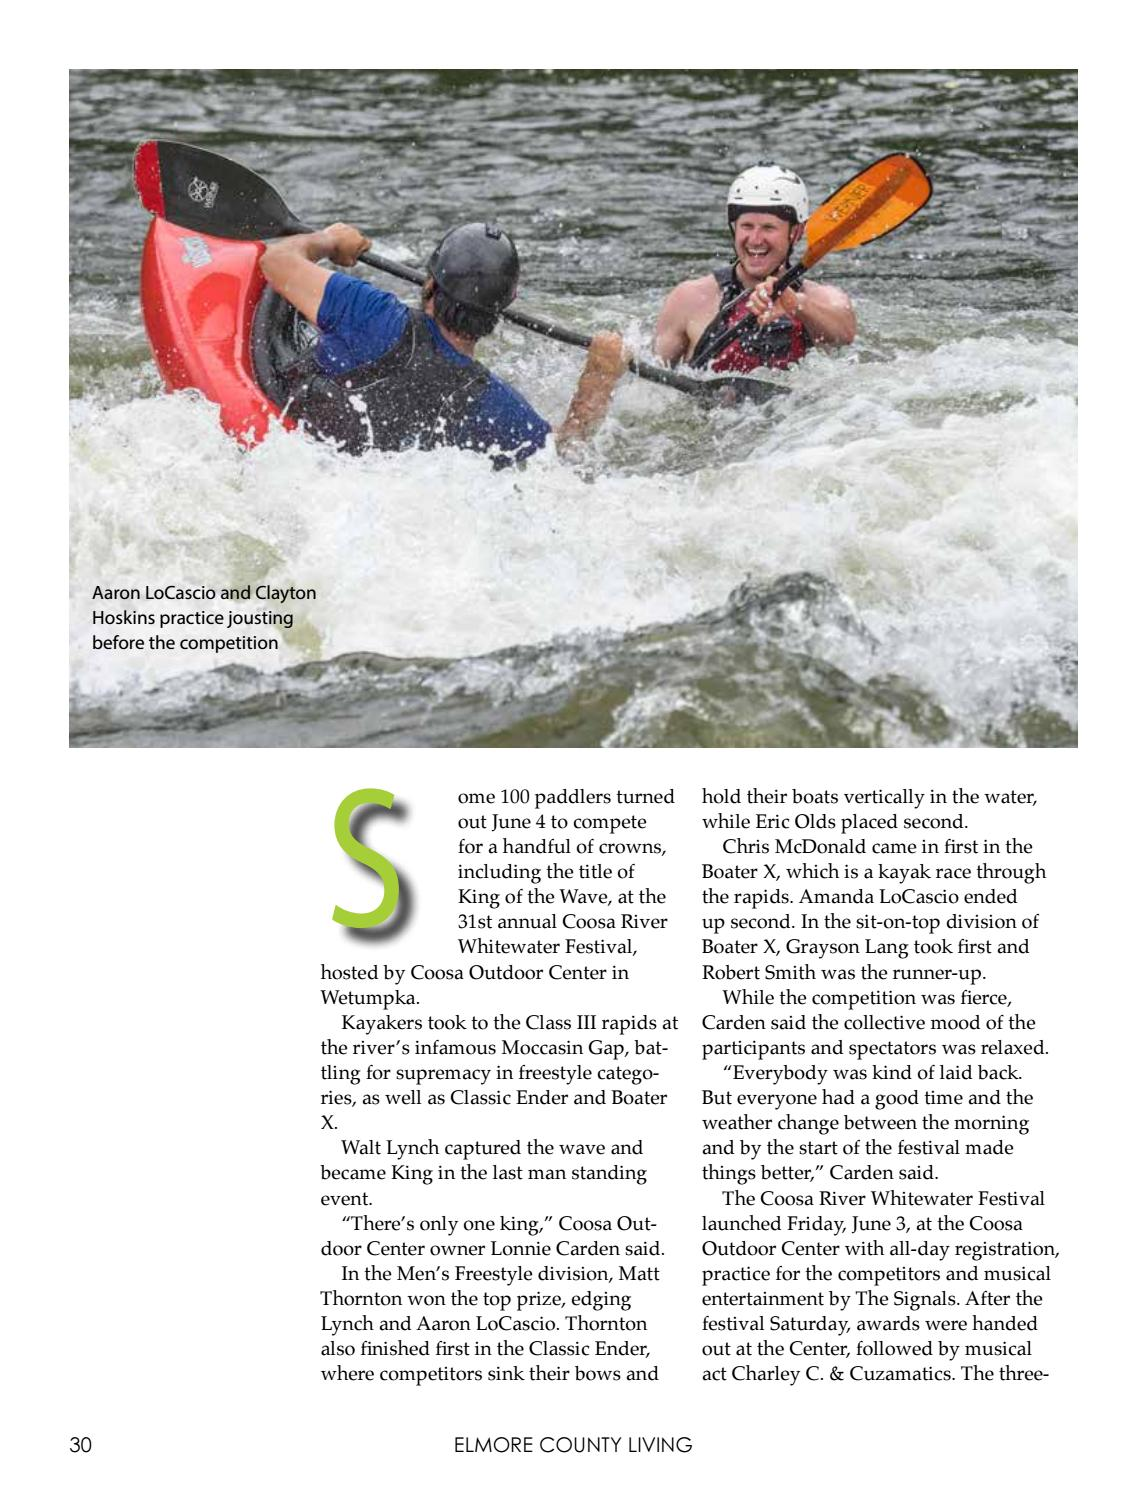 Elmore County Living June 2016 by Tallapoosa Publishers - issuu